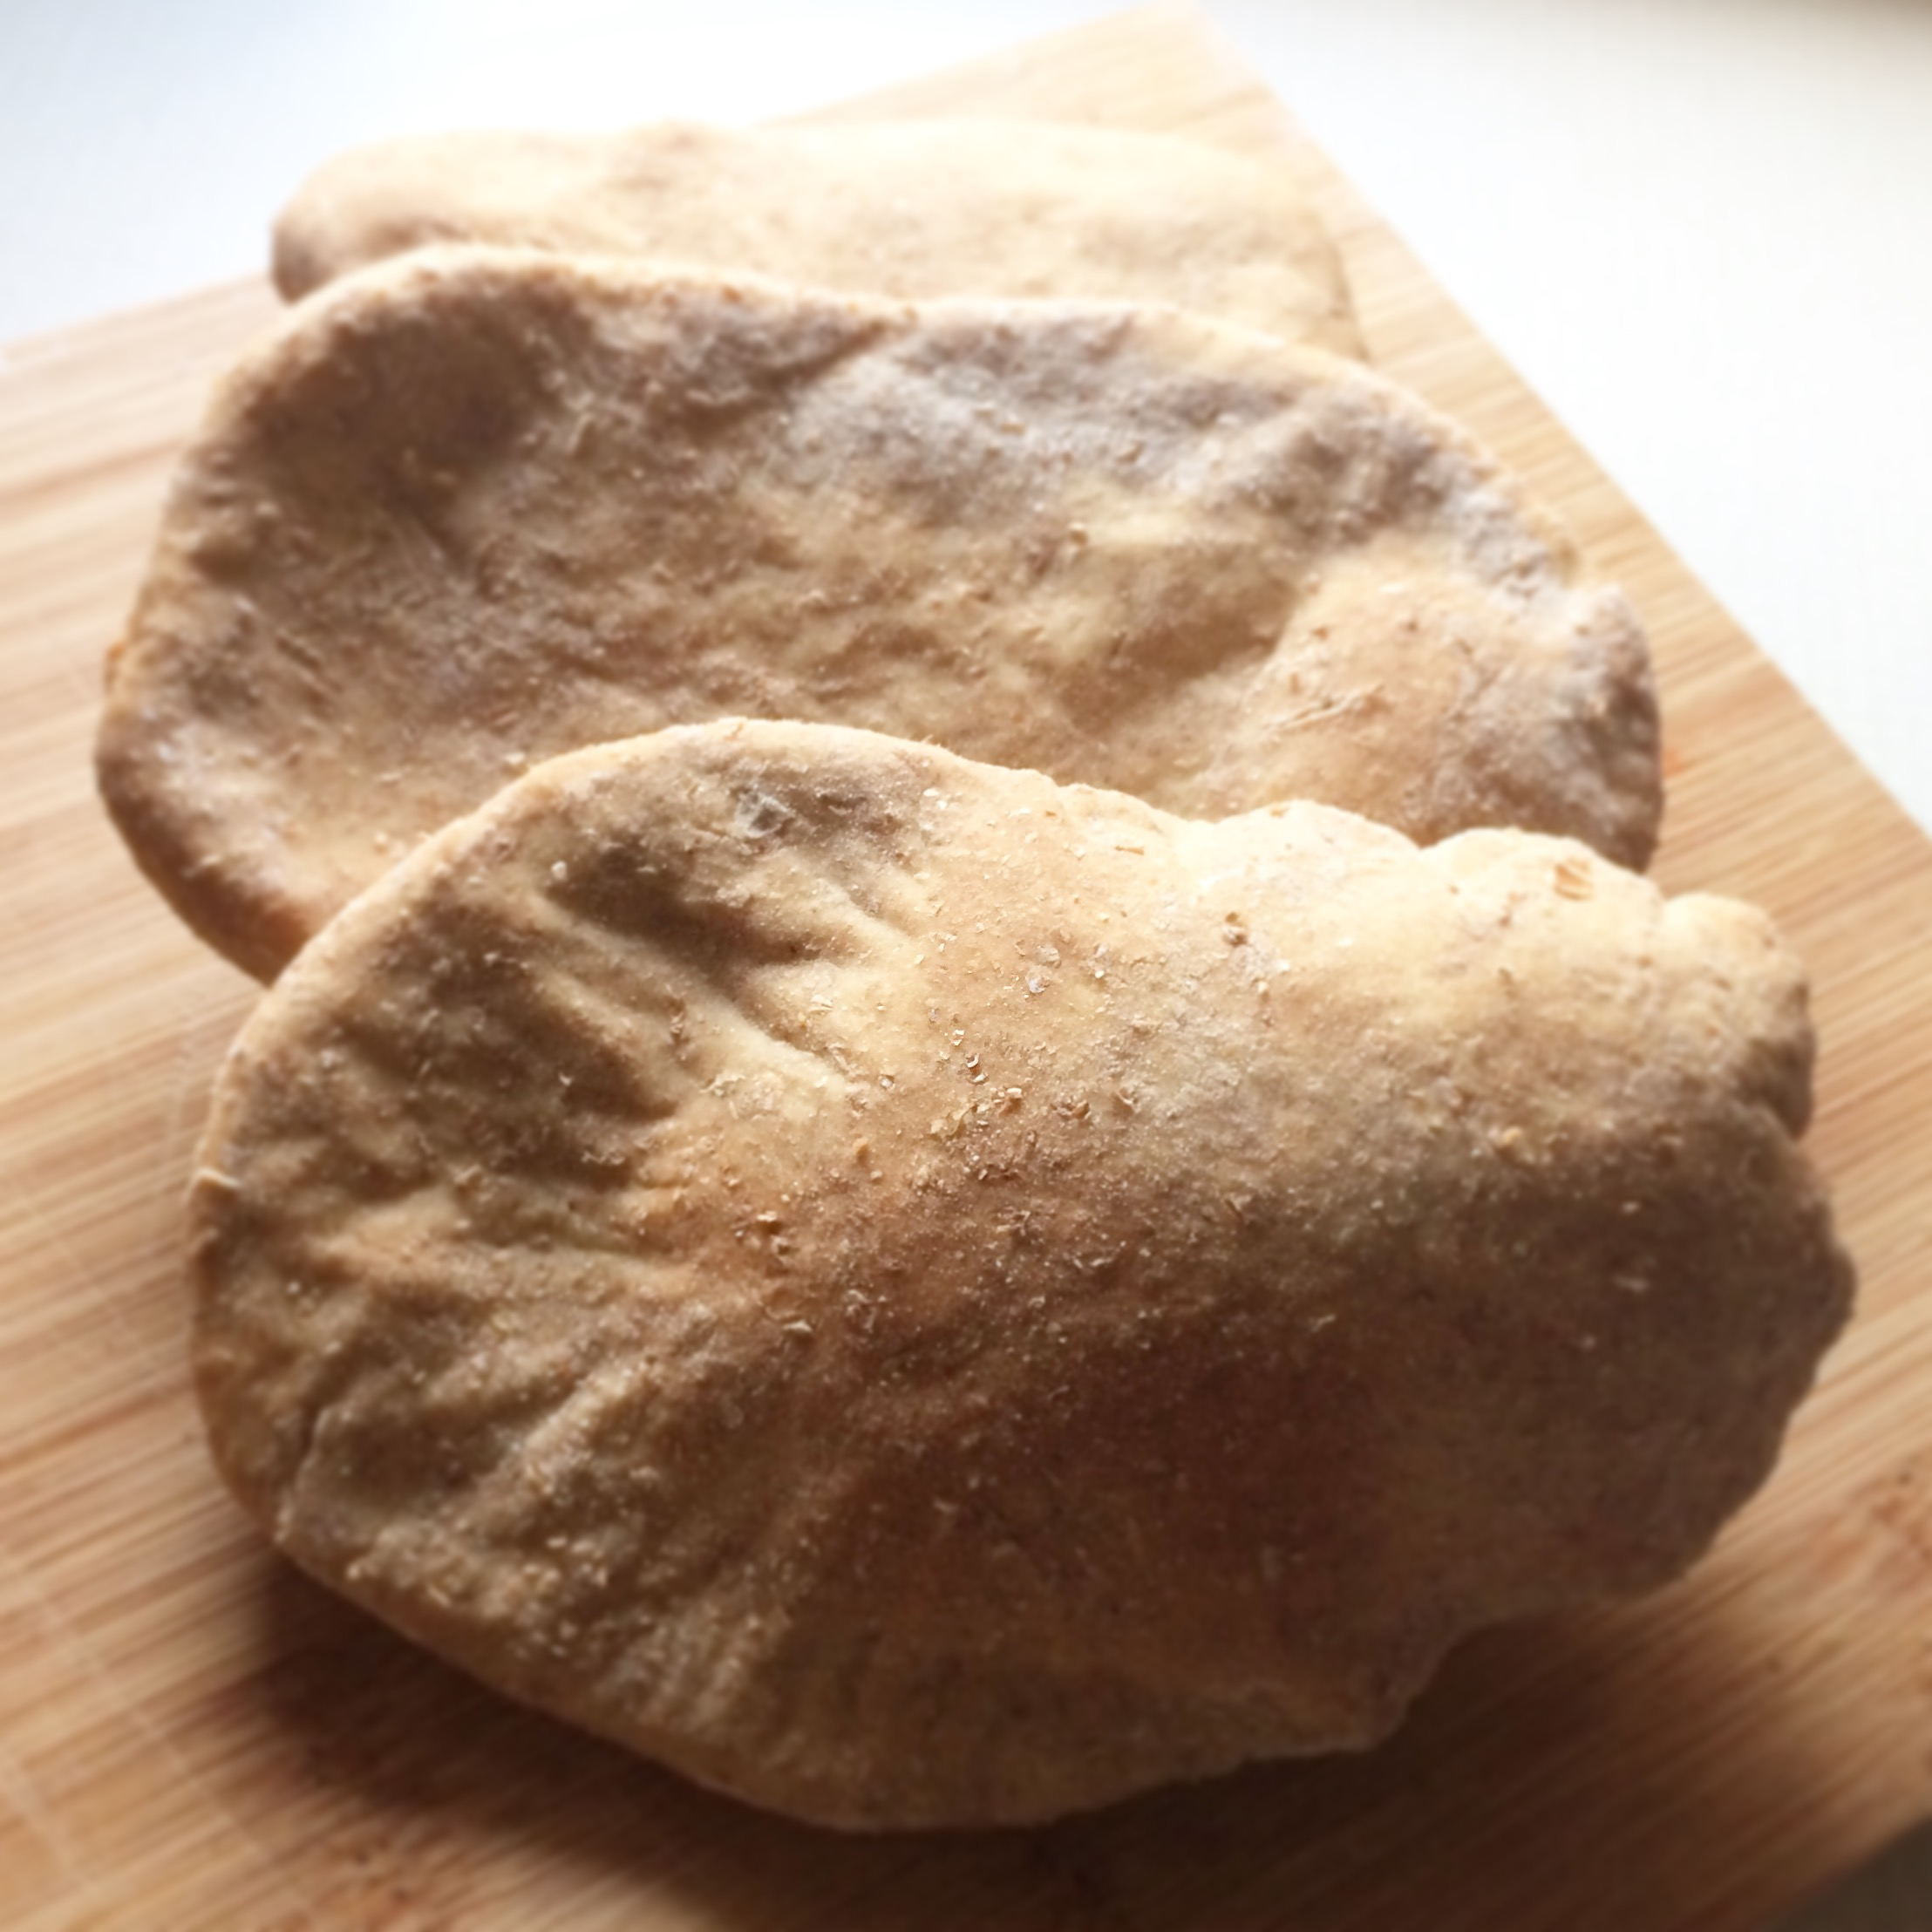 Homemade Wholemeal Pitta Bread Inspired by Sugar Free Farm